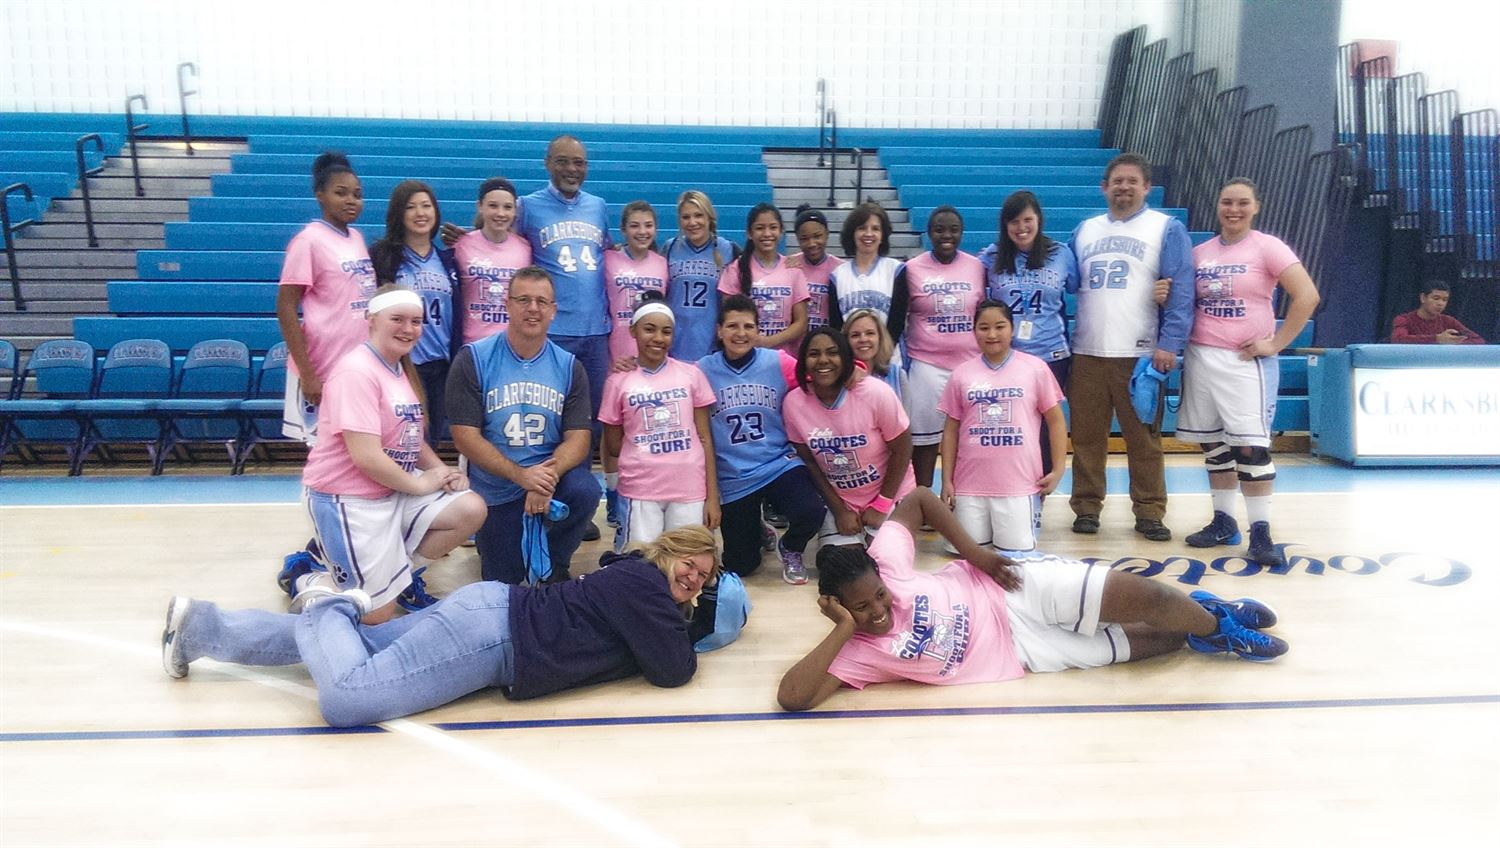 Clarksburg High School - Girls' JV Basketball